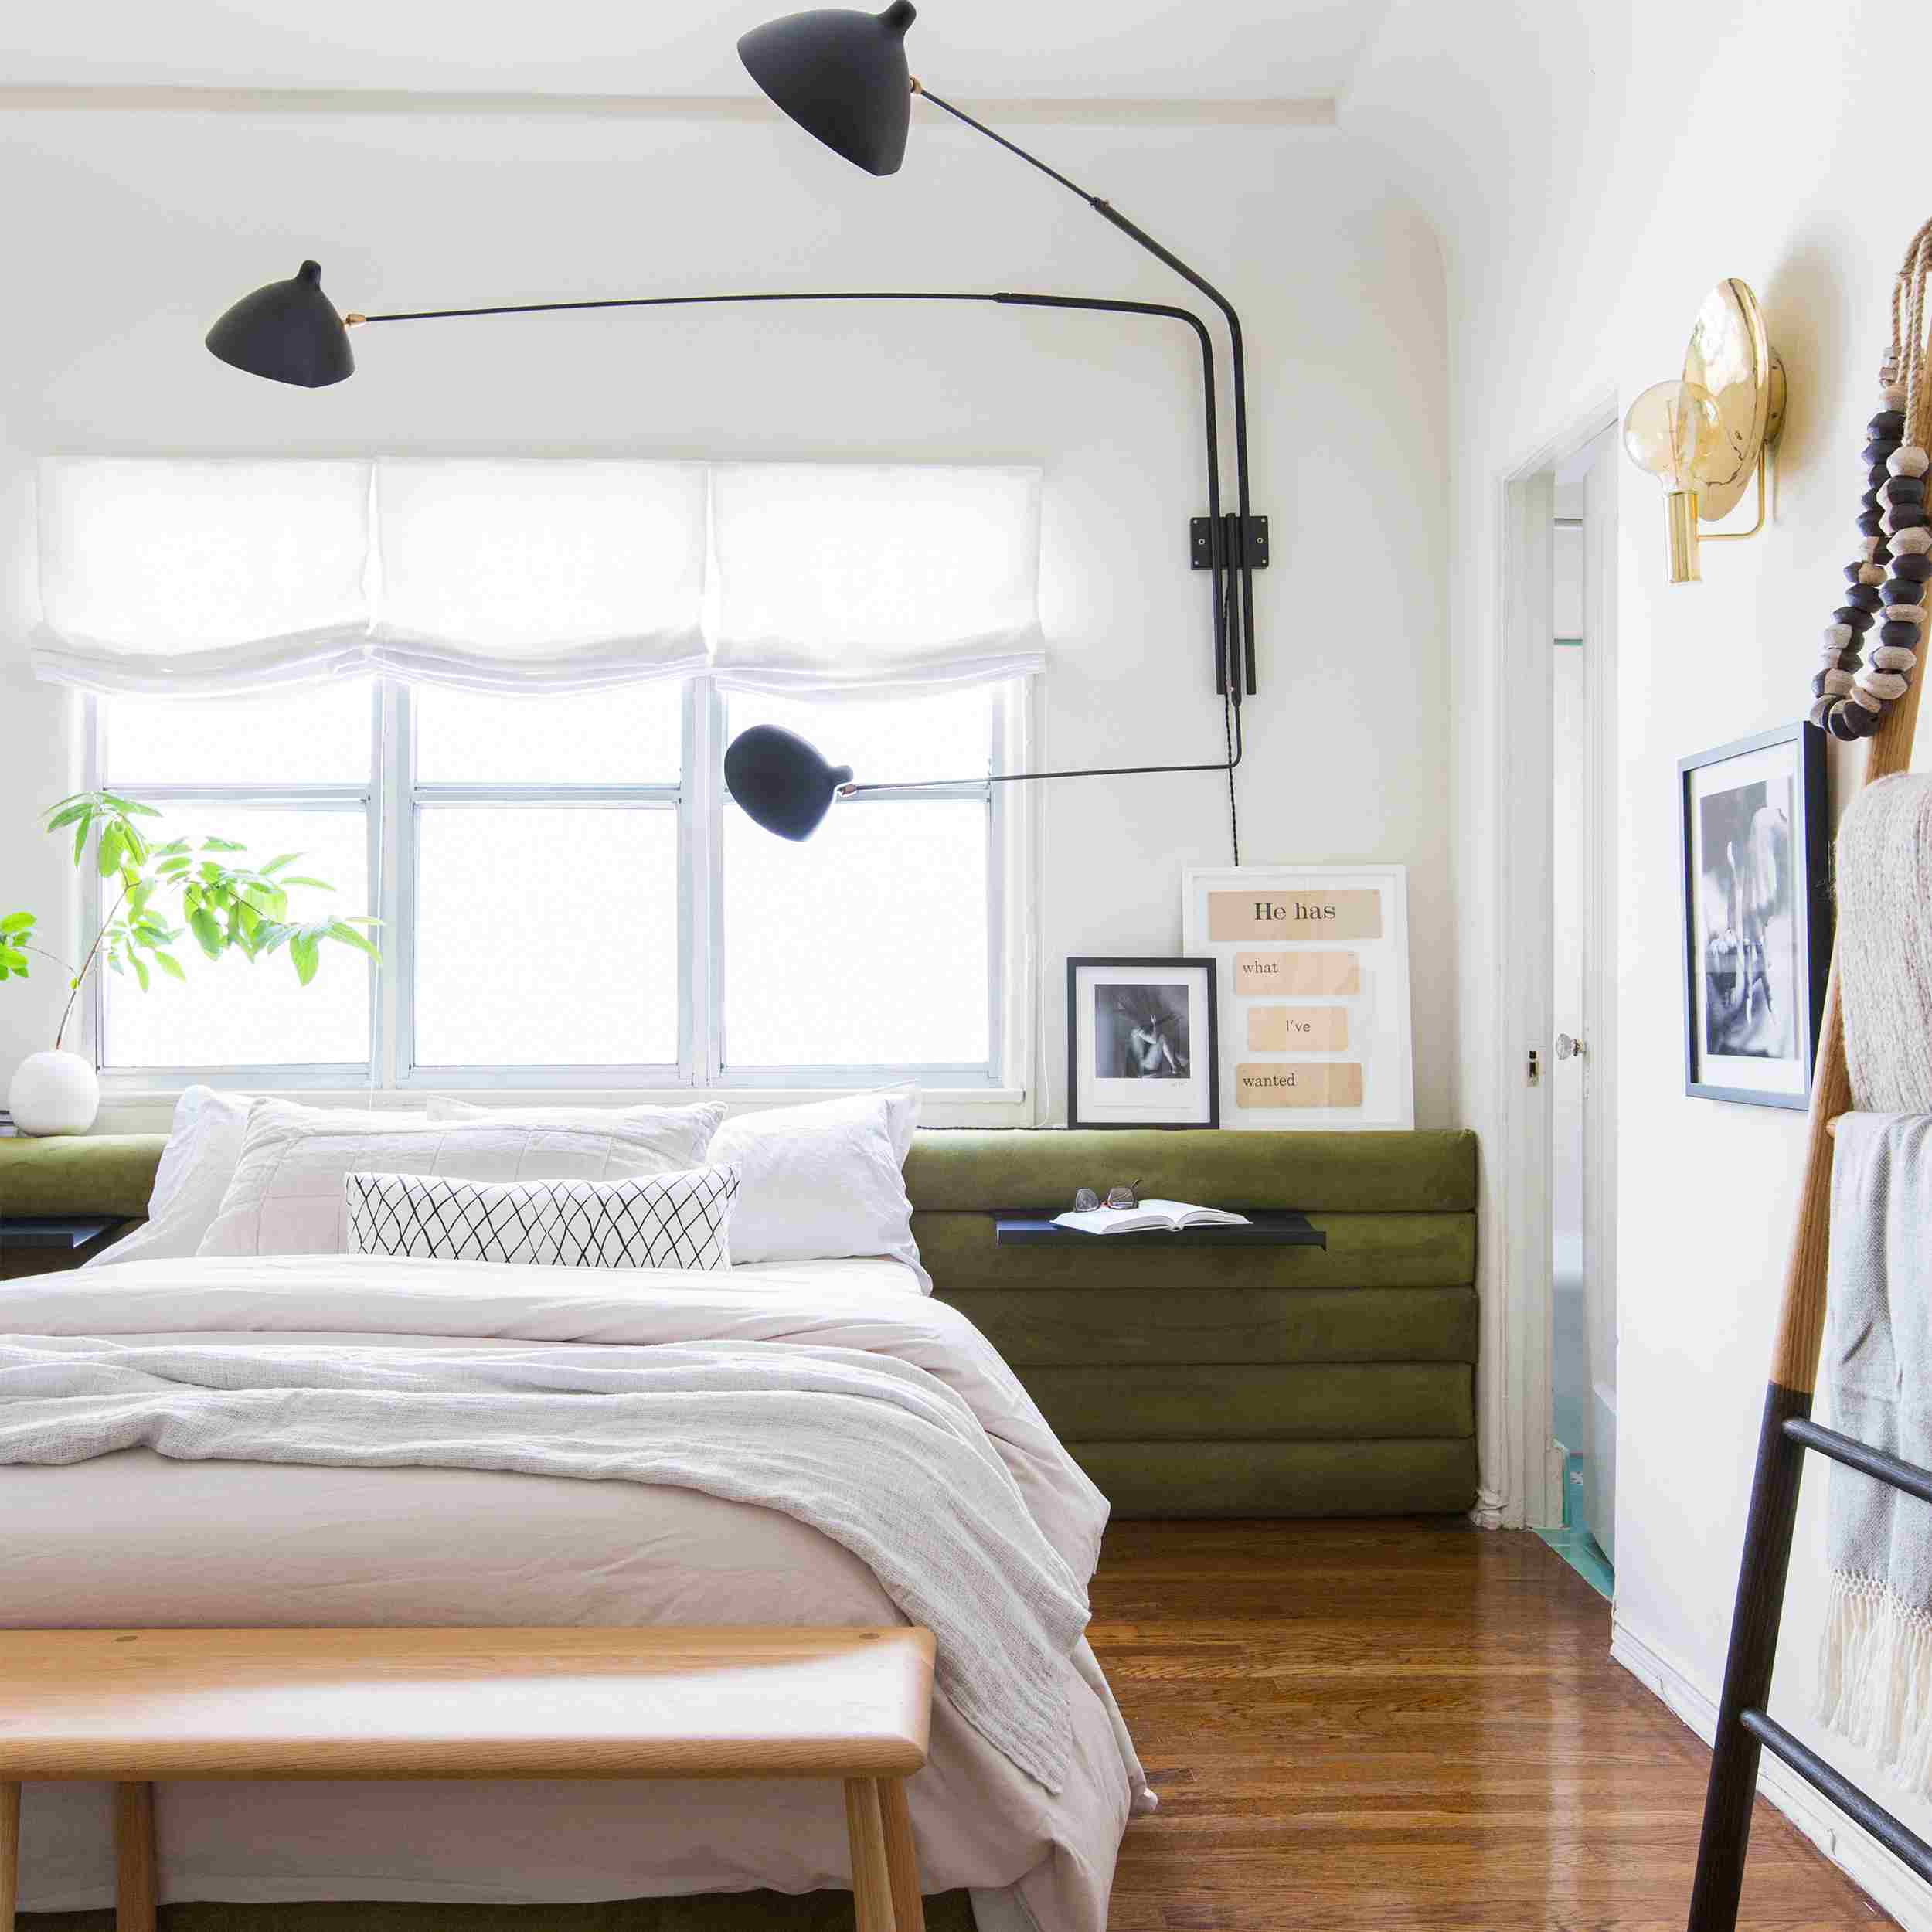 5 Small Bedroom Mistakes Everyone Makes And How To Fix Them